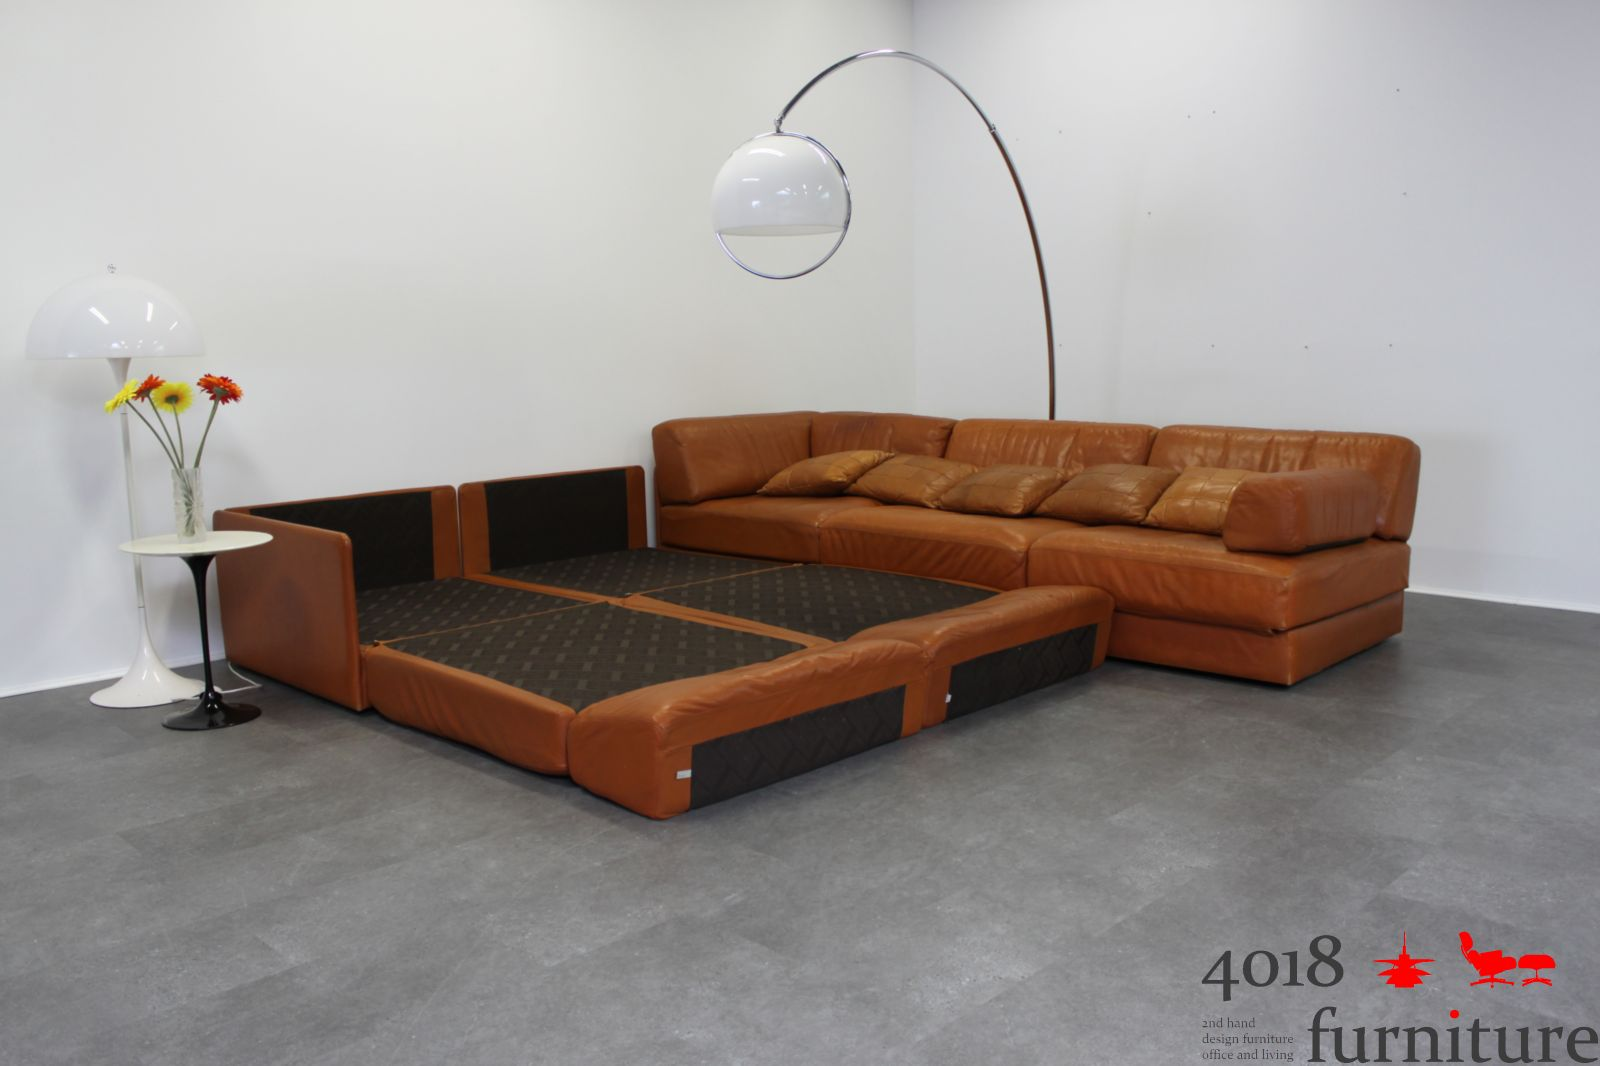 de sede ds 76 cognac 4 5 elemente daybed schlafsofa. Black Bedroom Furniture Sets. Home Design Ideas